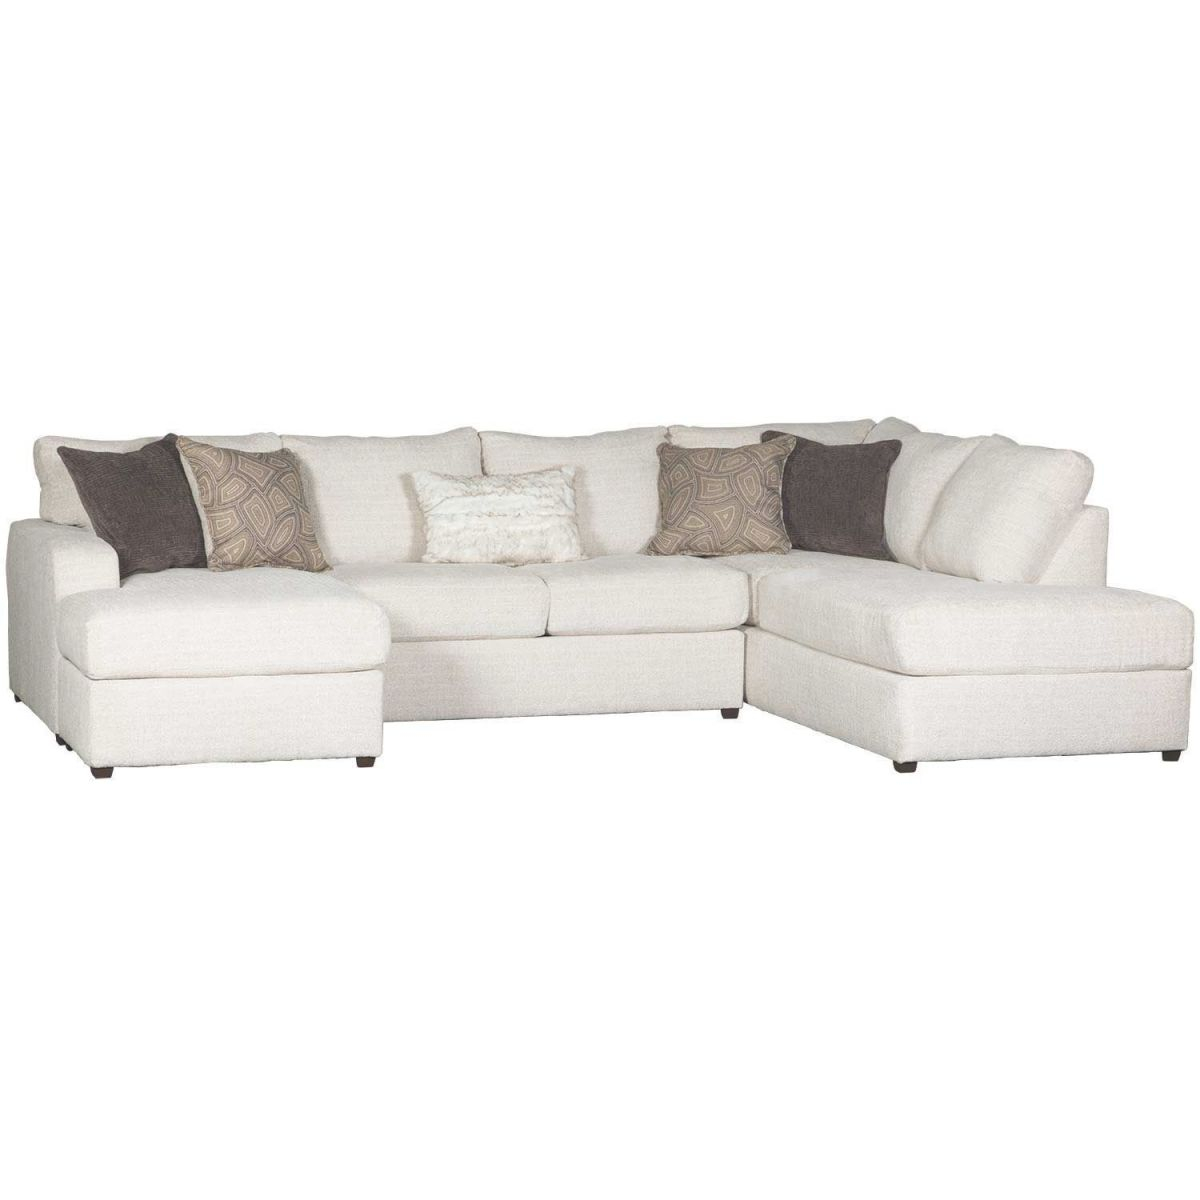 Amplify Beige 2 Piece Laf Sofa Chaise Sectional for Elegant 2 Piece Sectional With Chaise